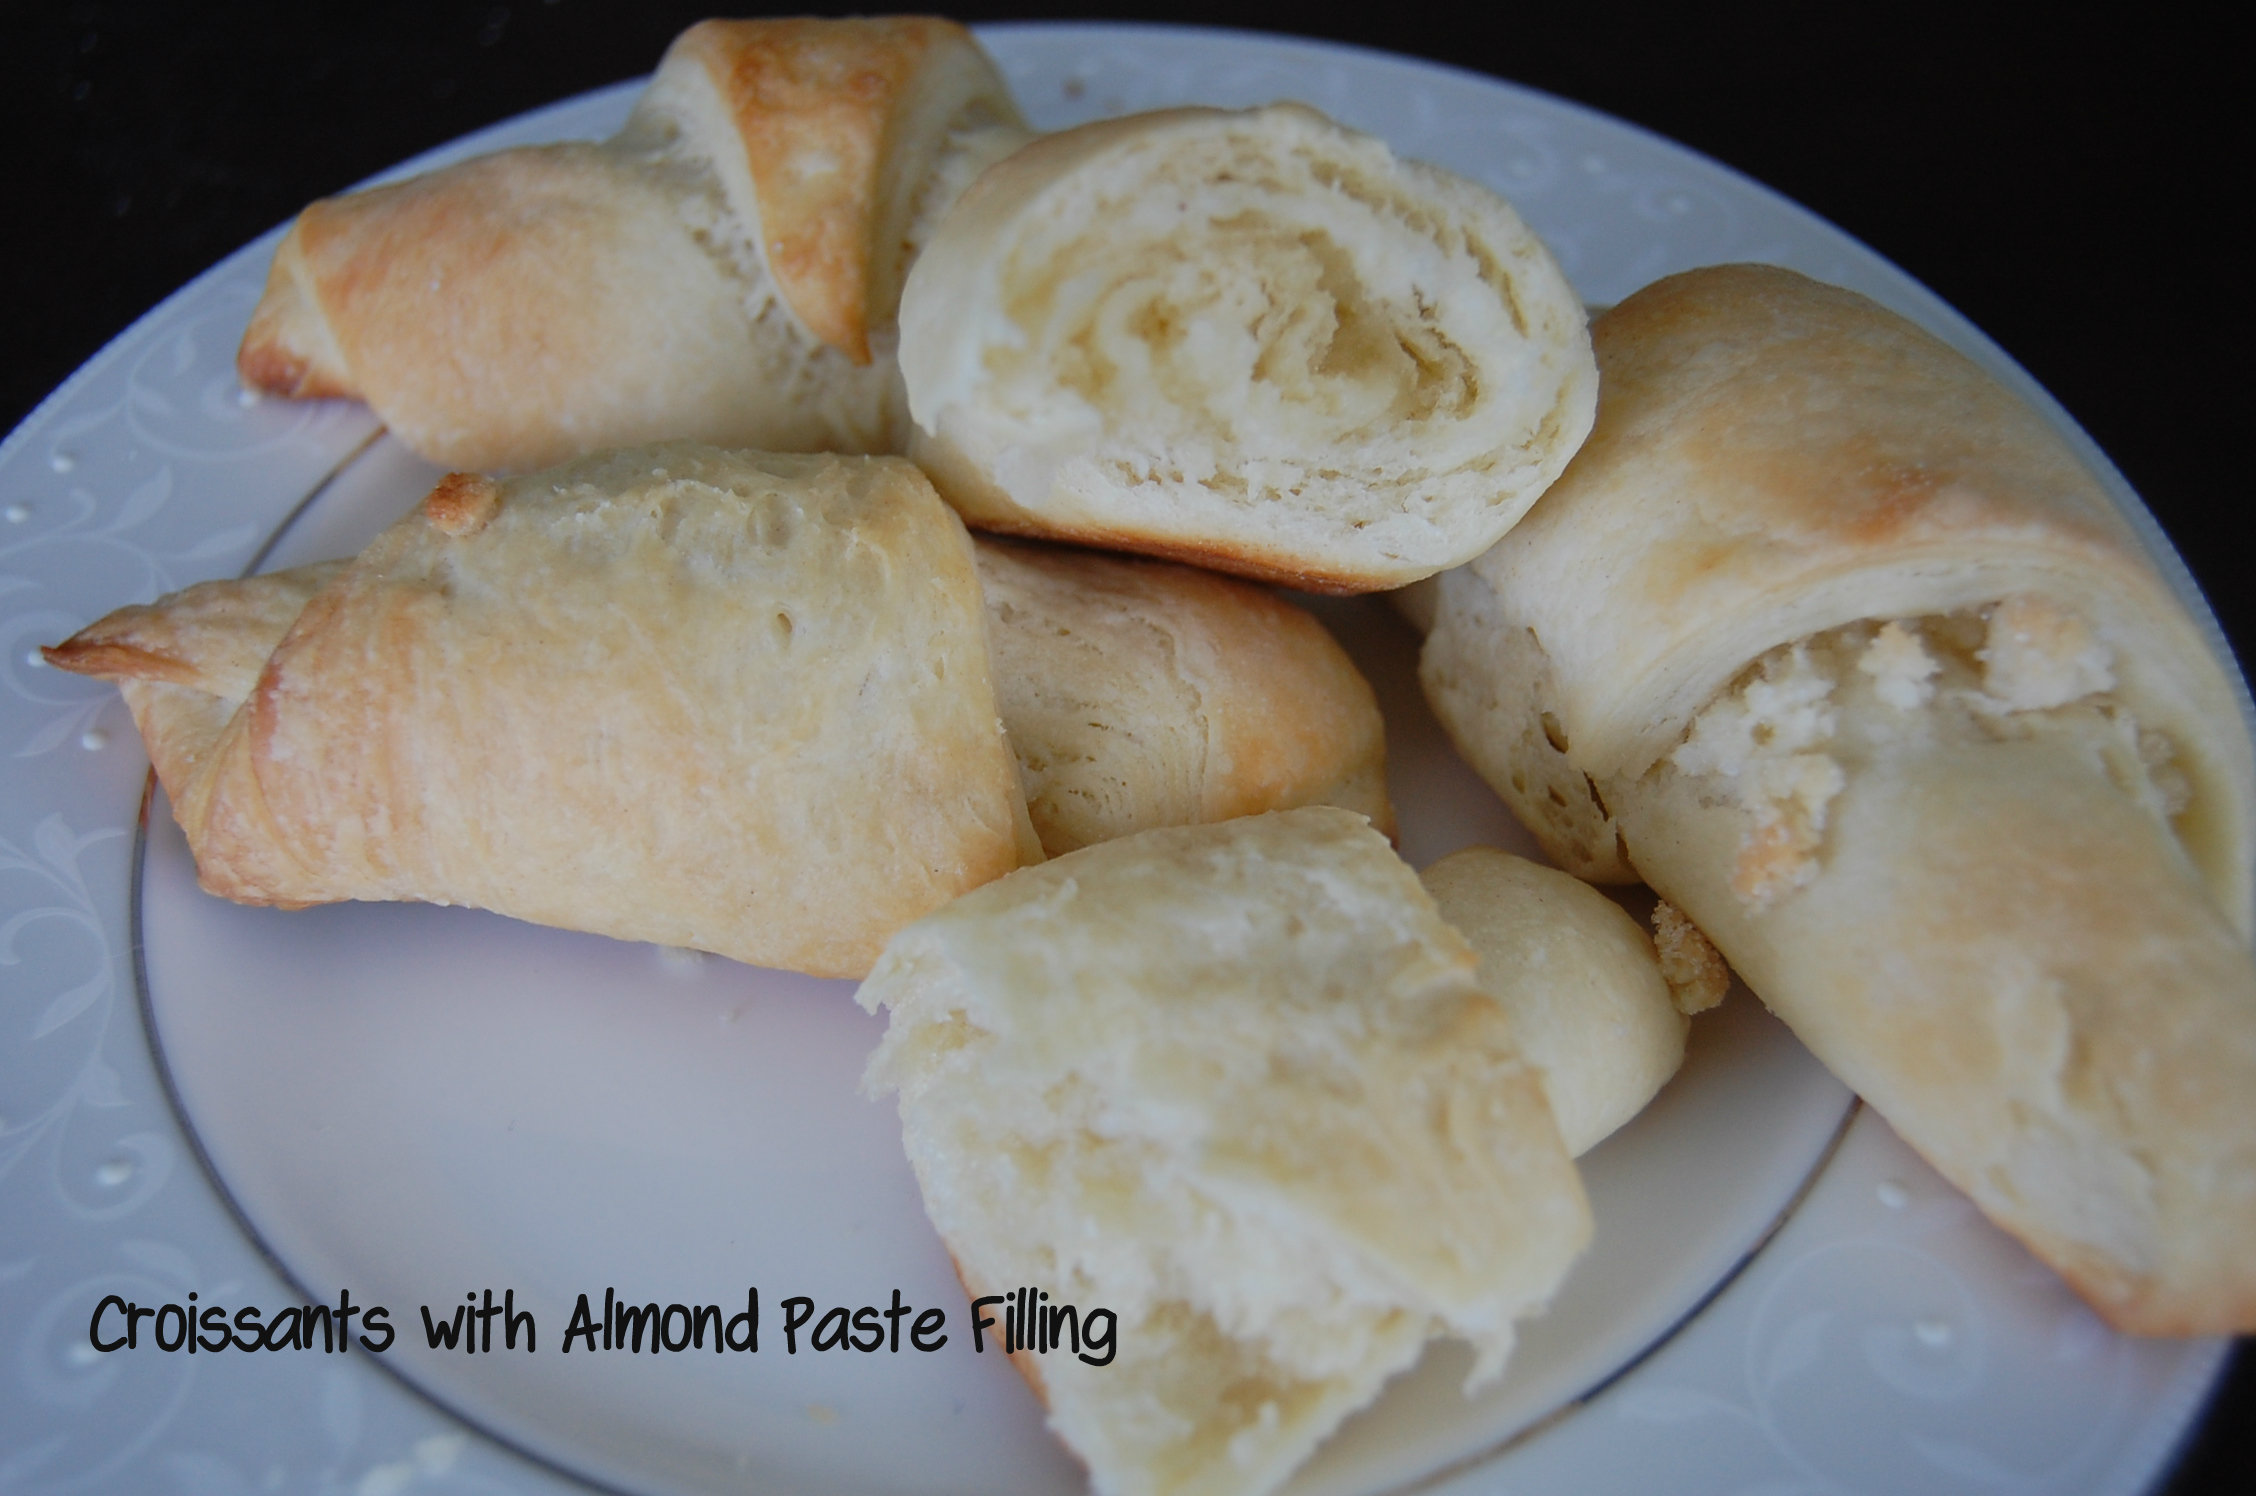 Once you've made Croissants with Almond Paste Filling you'll want them again and again. Perfect baked good for weekend brunch!